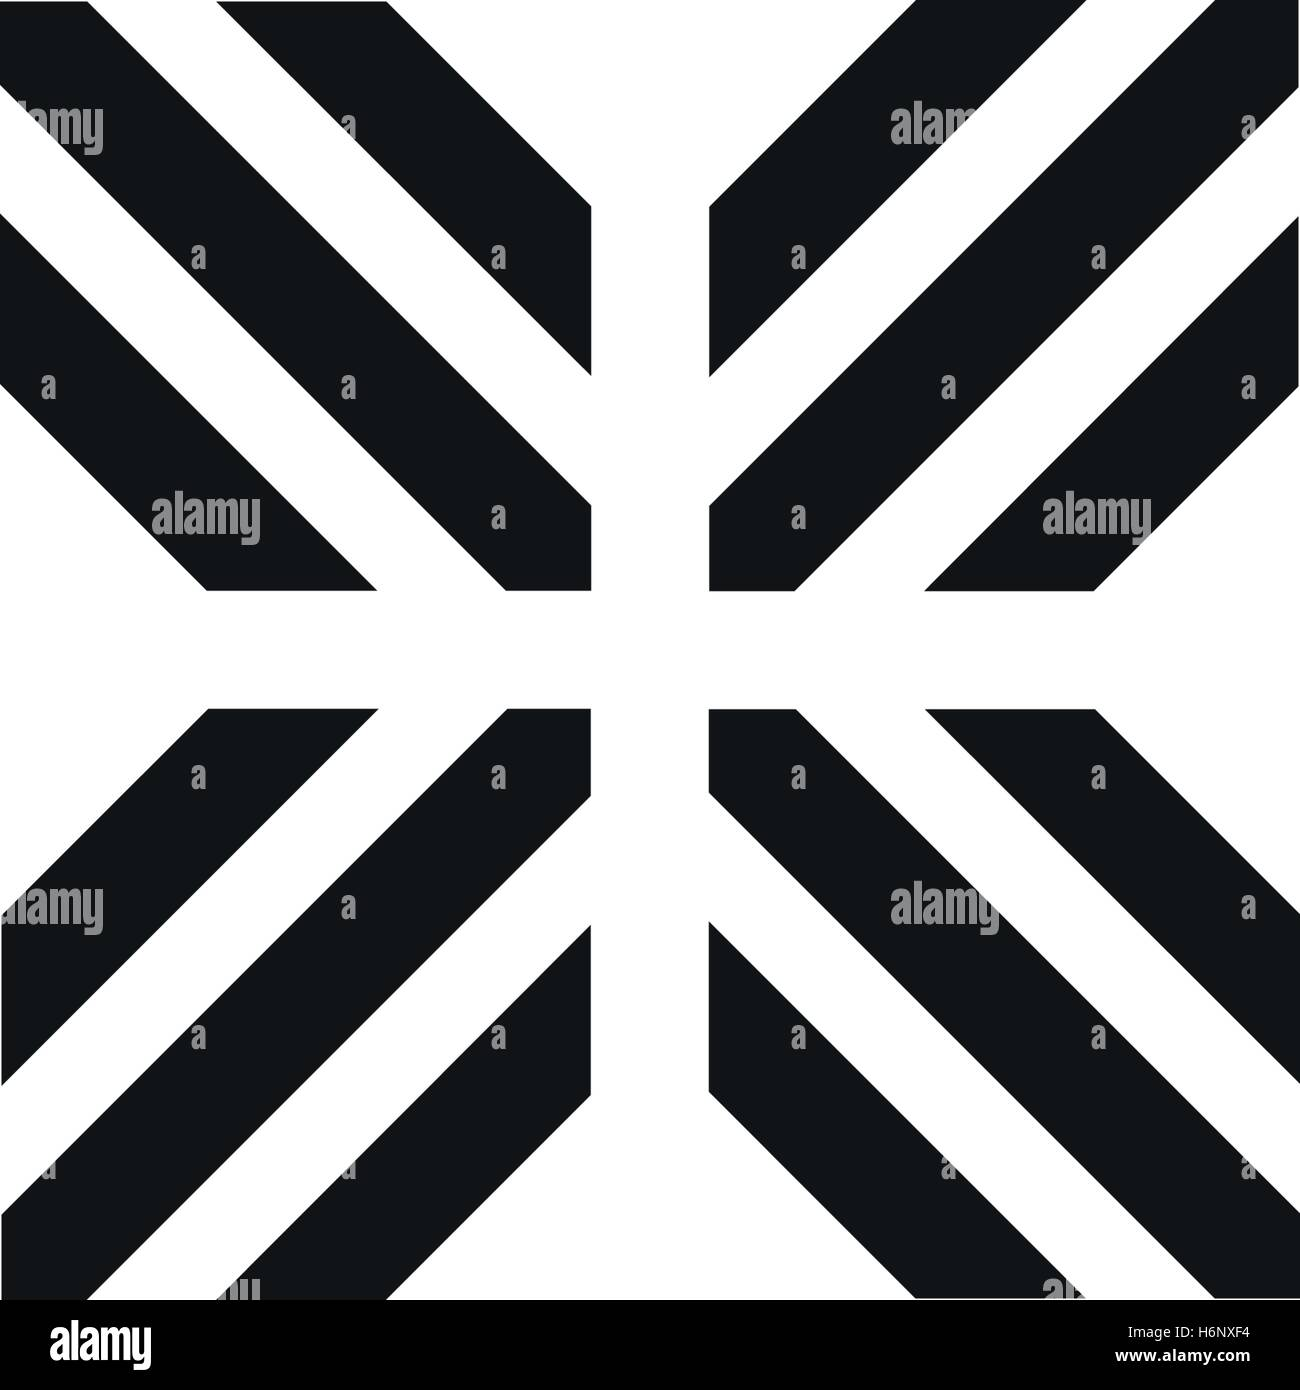 Unusual Geometric Letter X Architecture Vector Logo Isolated Stock Vector Image Art Alamy